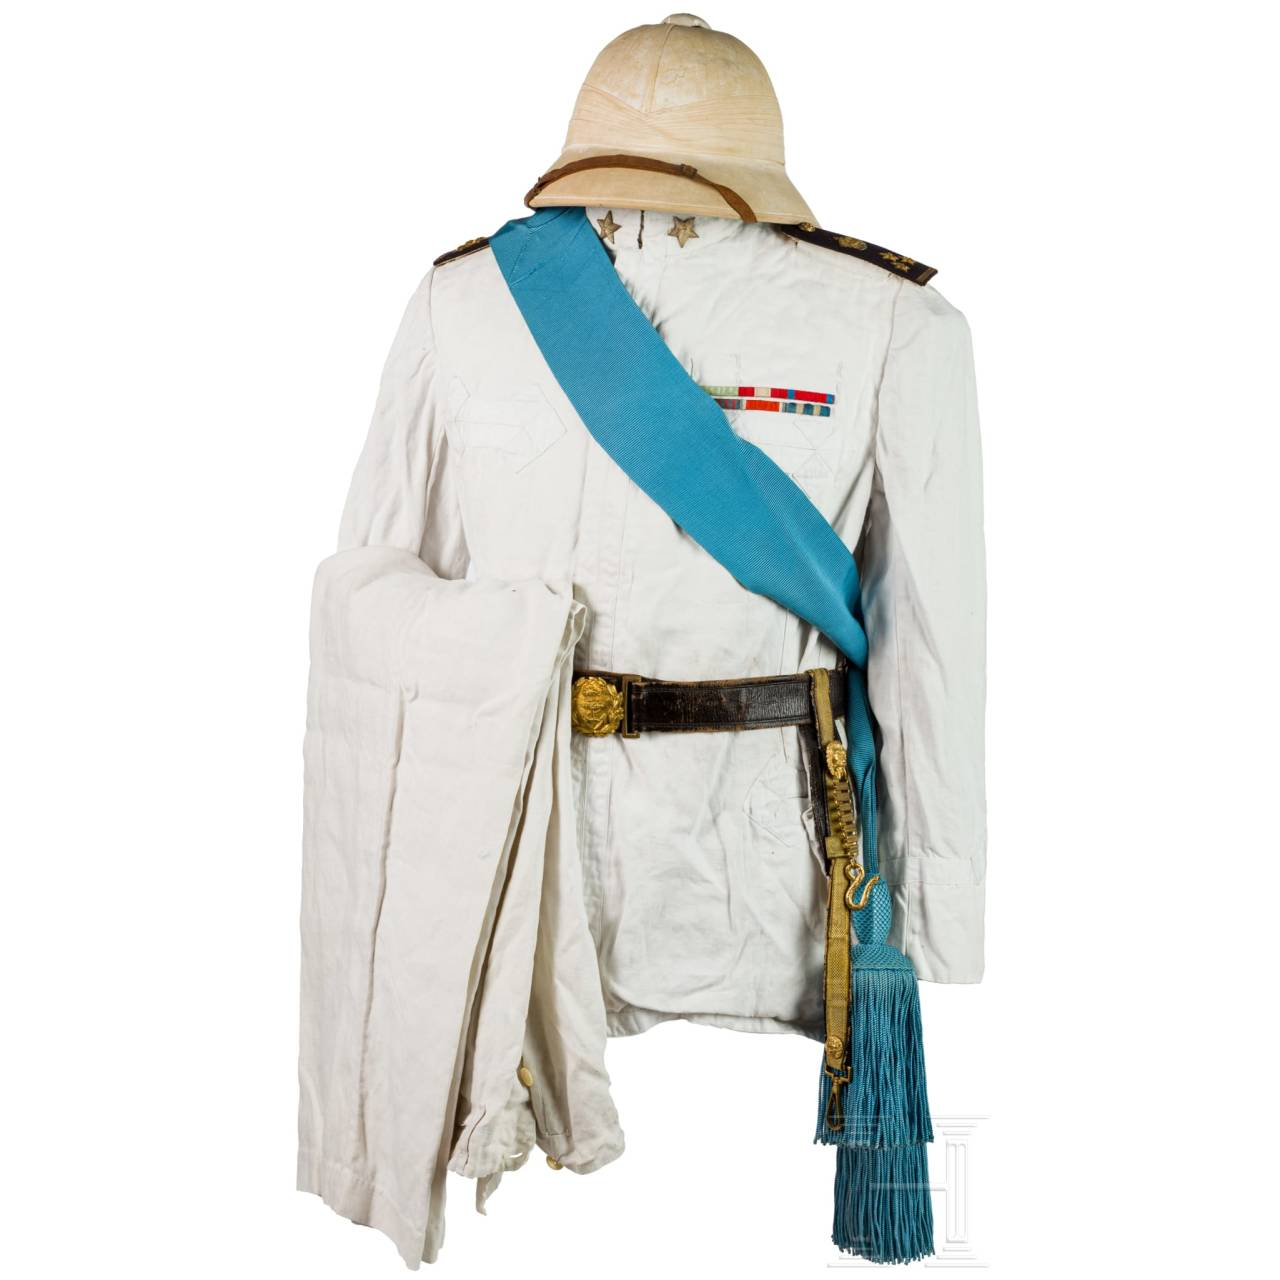 A colonial uniform M 1909 for members of the navy